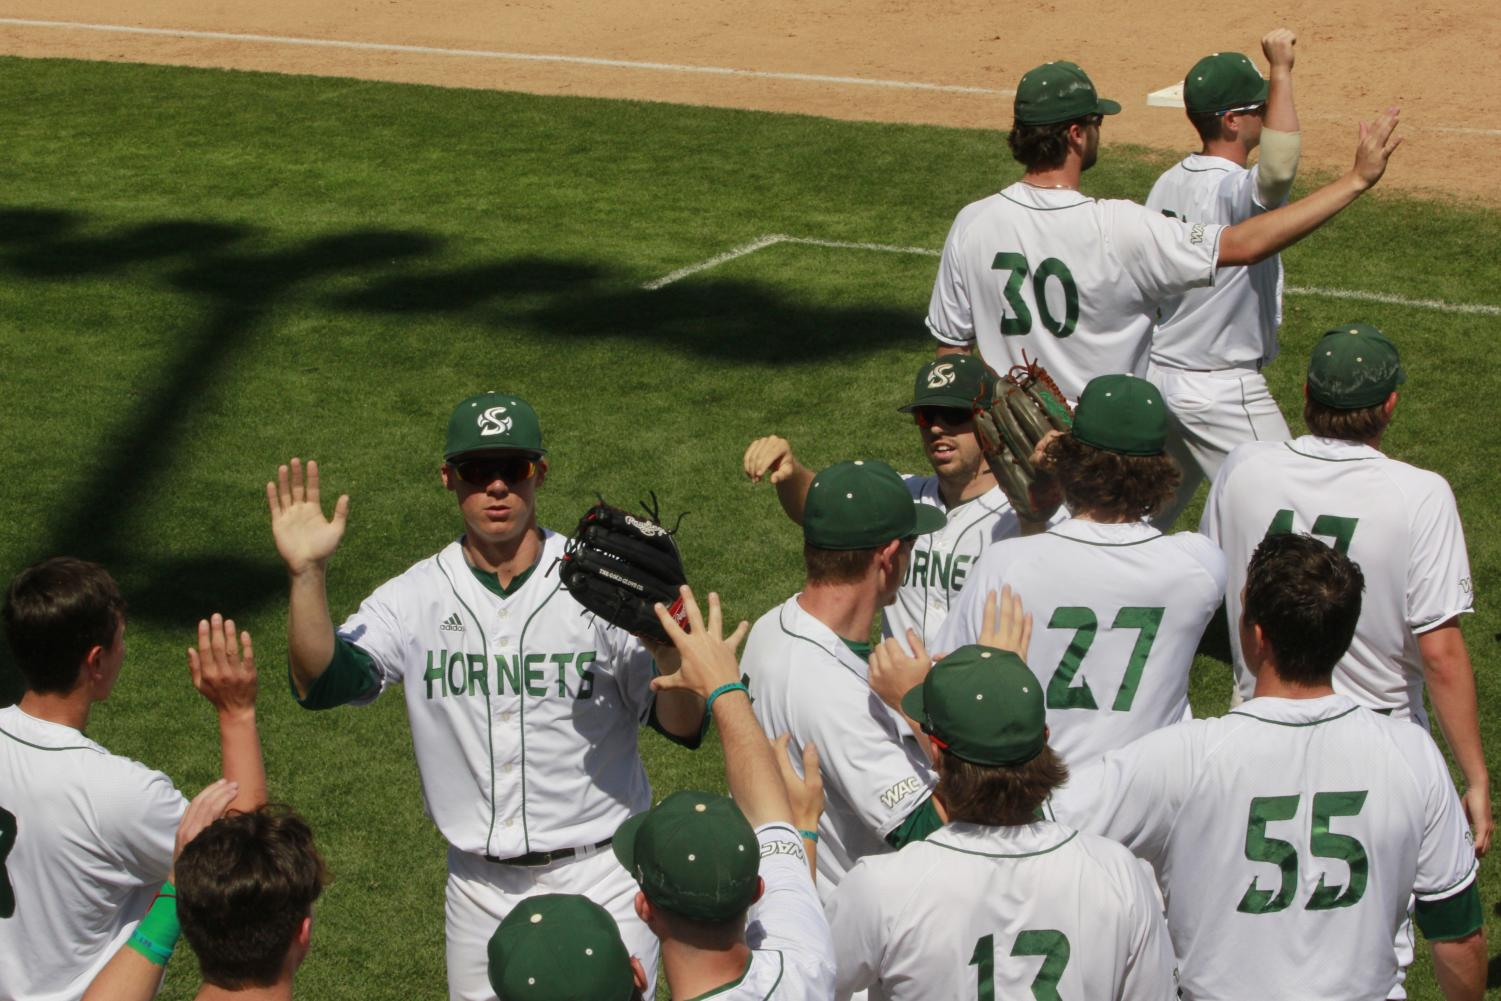 Sac State outfielders junior Matt Smith (left) and senior Bronson Grubbs (right) high-five teammates upon returning to the dugout in a 5-4 win Sunday over CSU Bakersfield at John Smith Field. Since beginning the season 3-6, the Hornets have gone 18-4 and are currently first in the Western Athletic Conference.